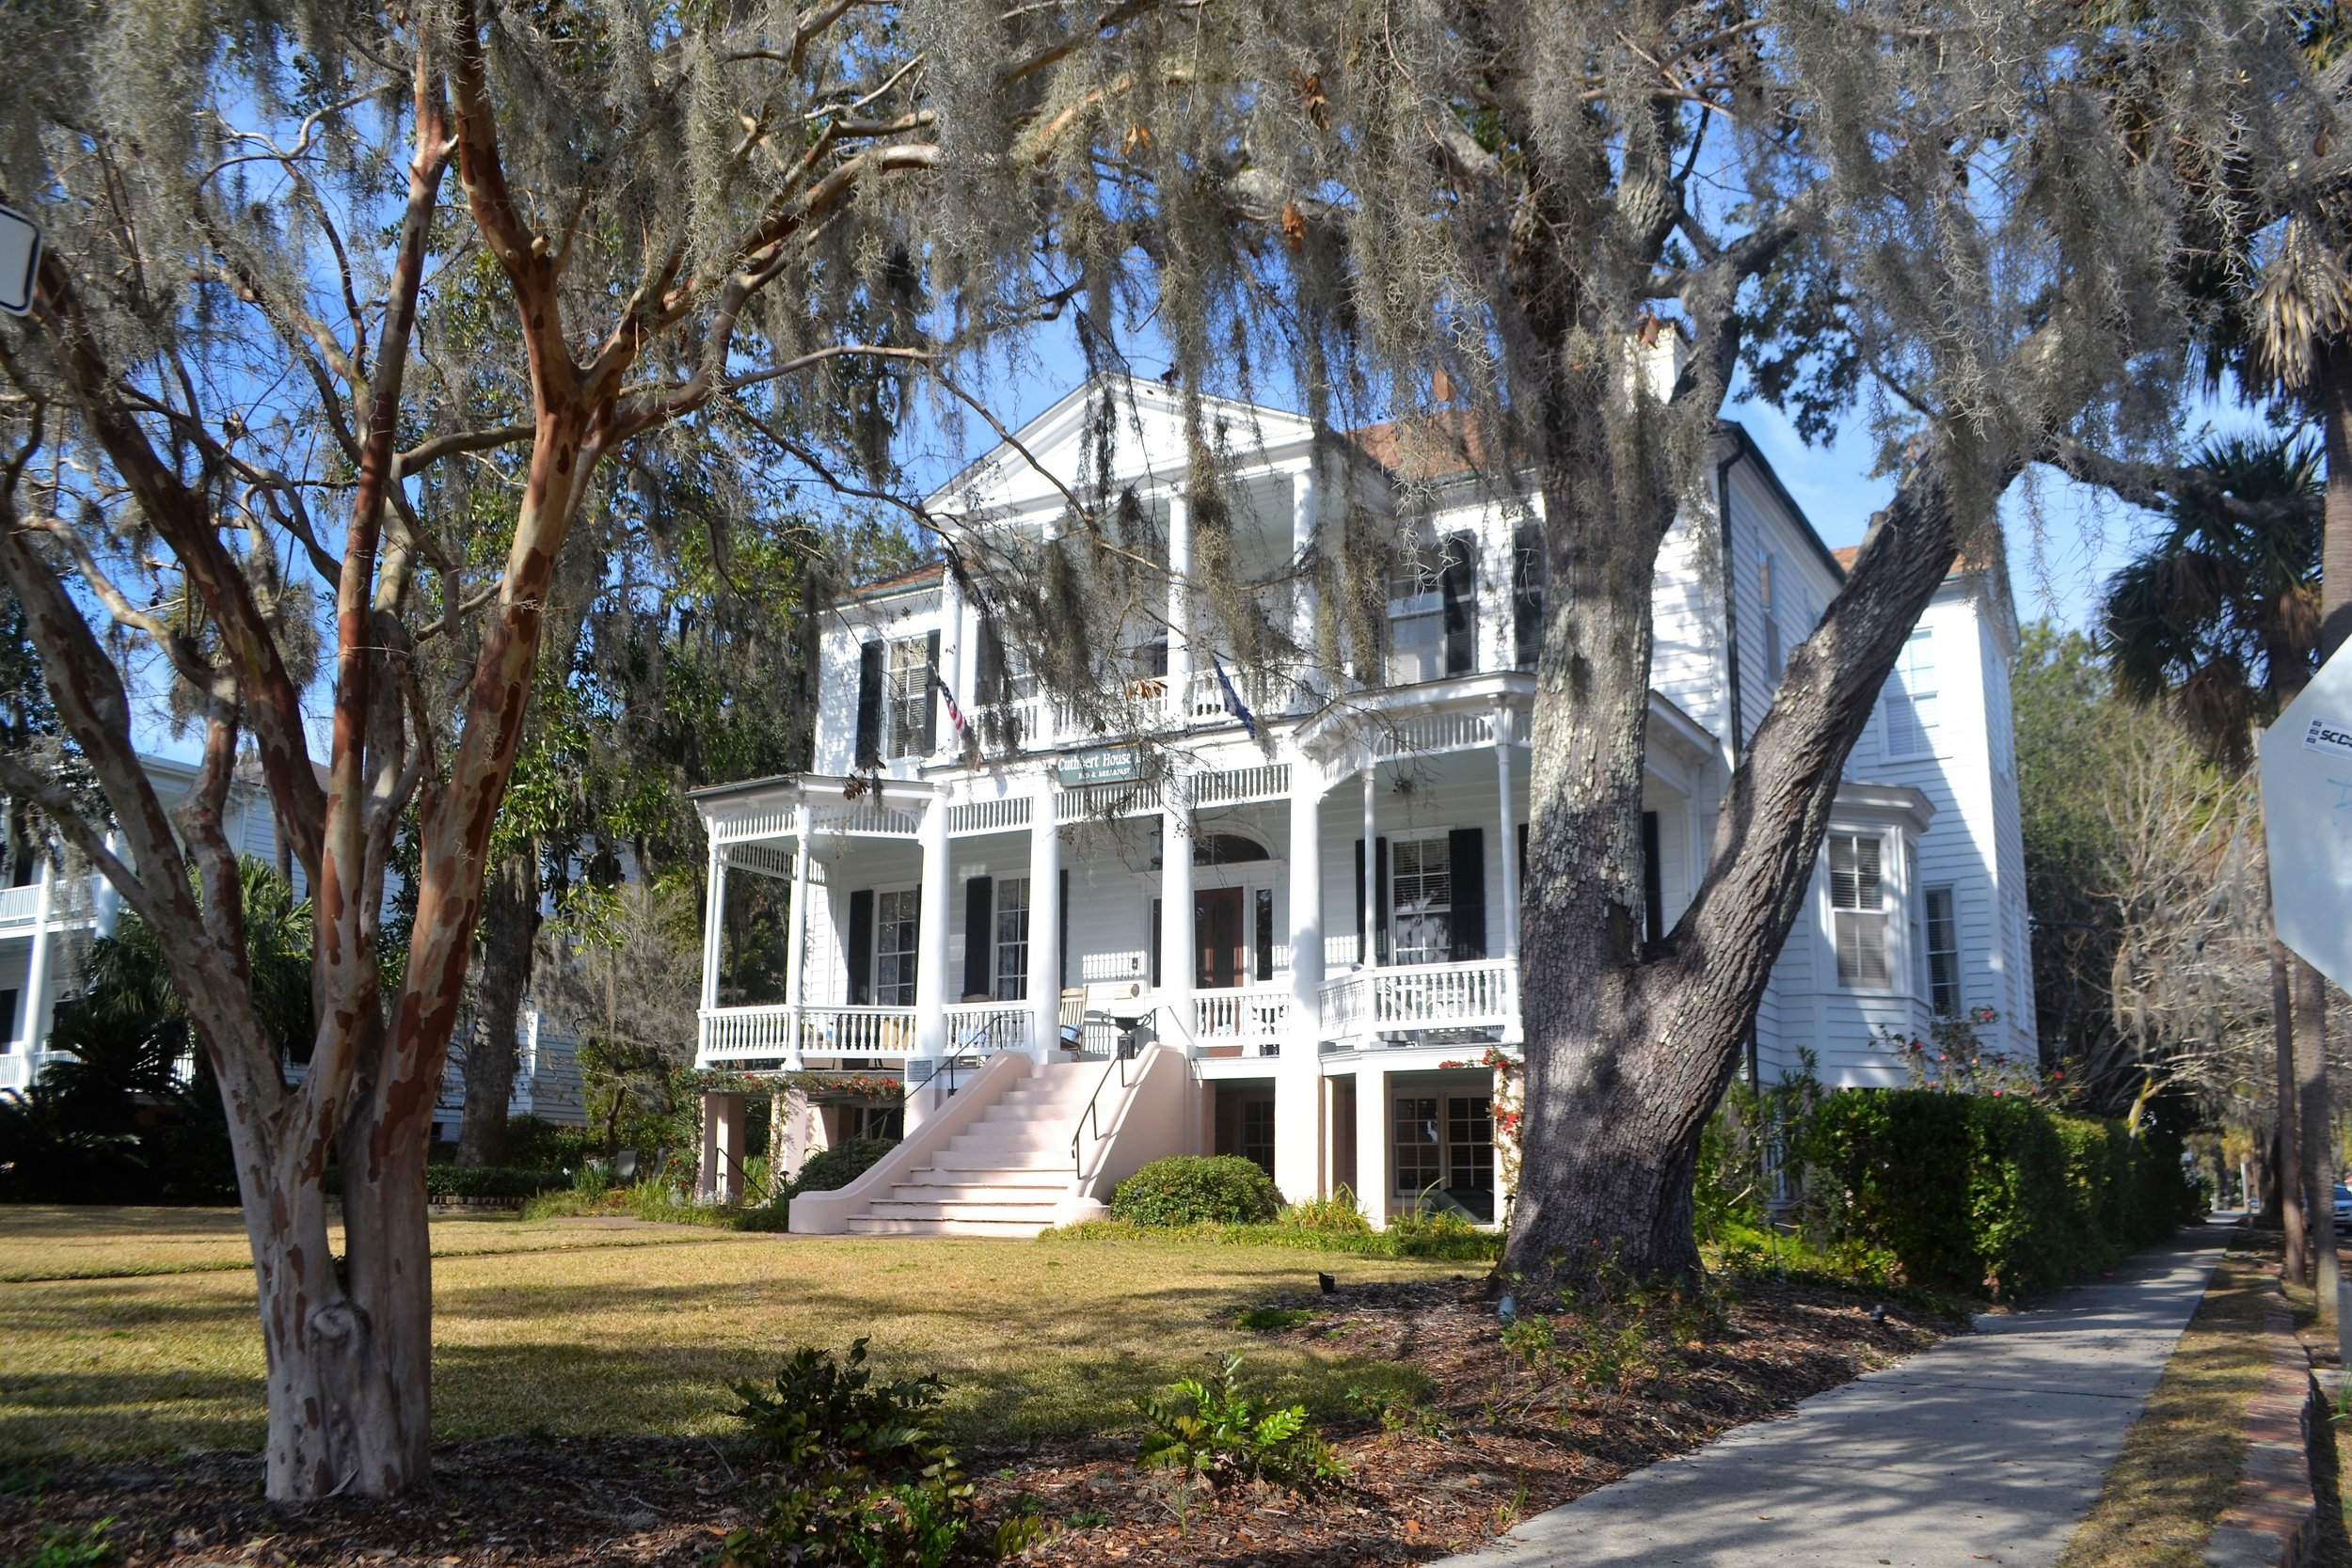 Antebellum-style home in Beaufort, South Carolina